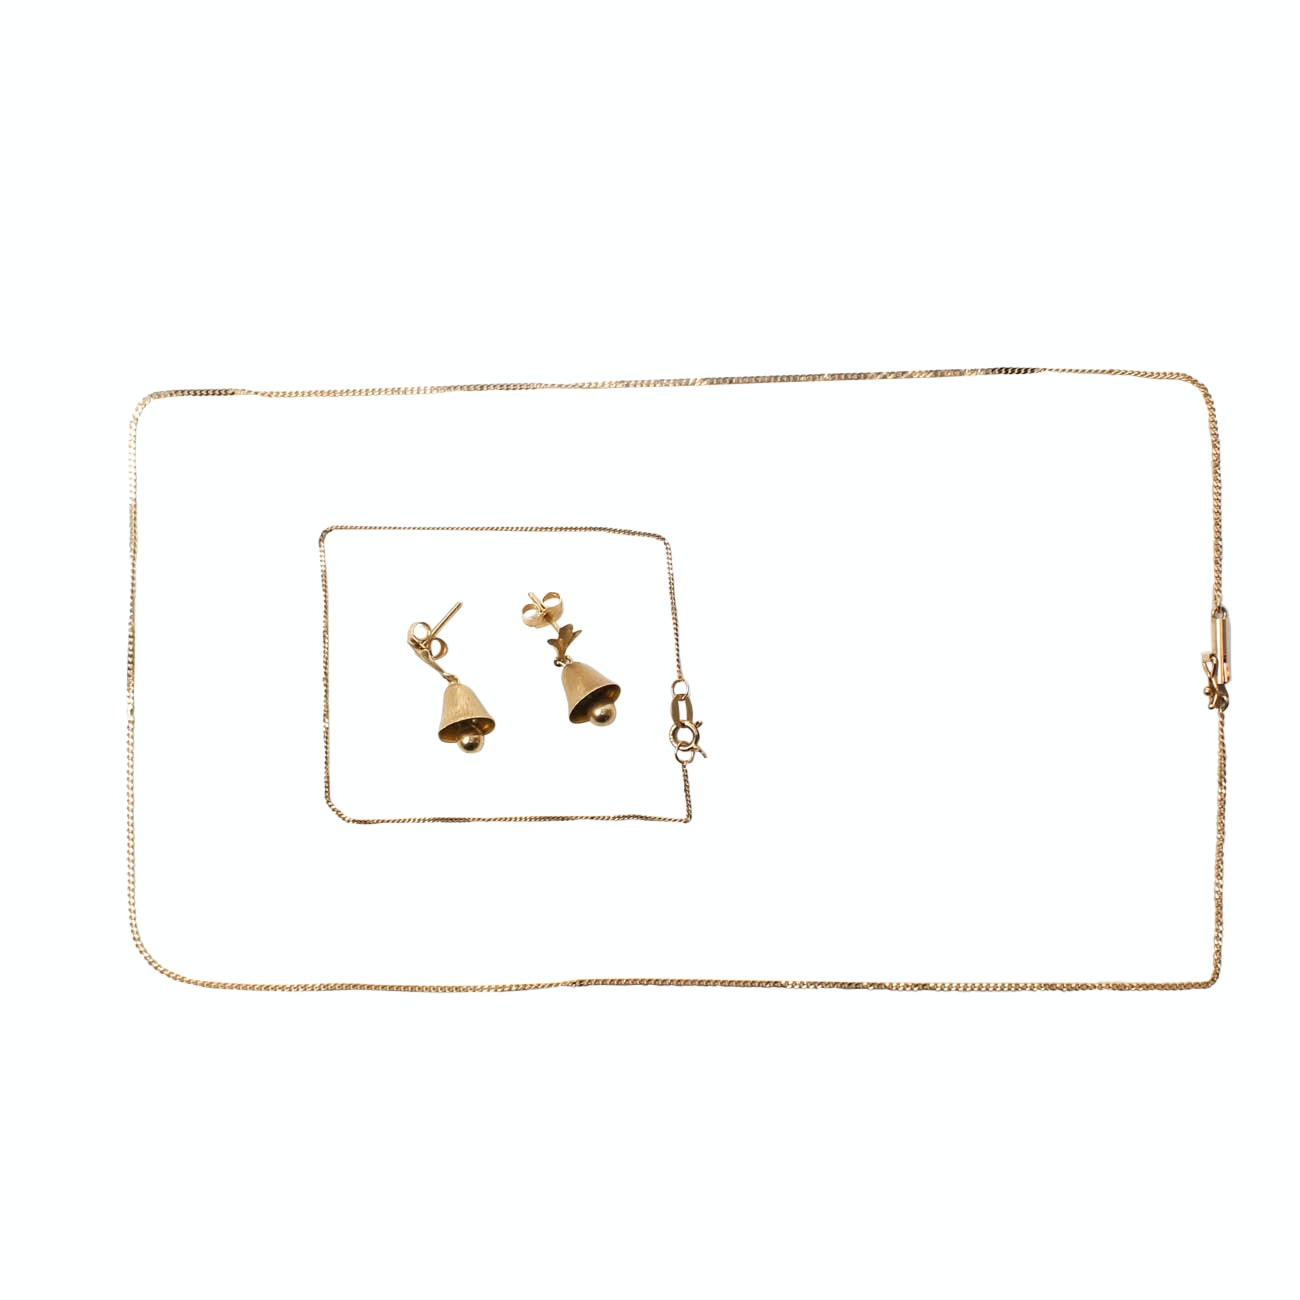 14K Yellow Gold Bell Earrings and Chains